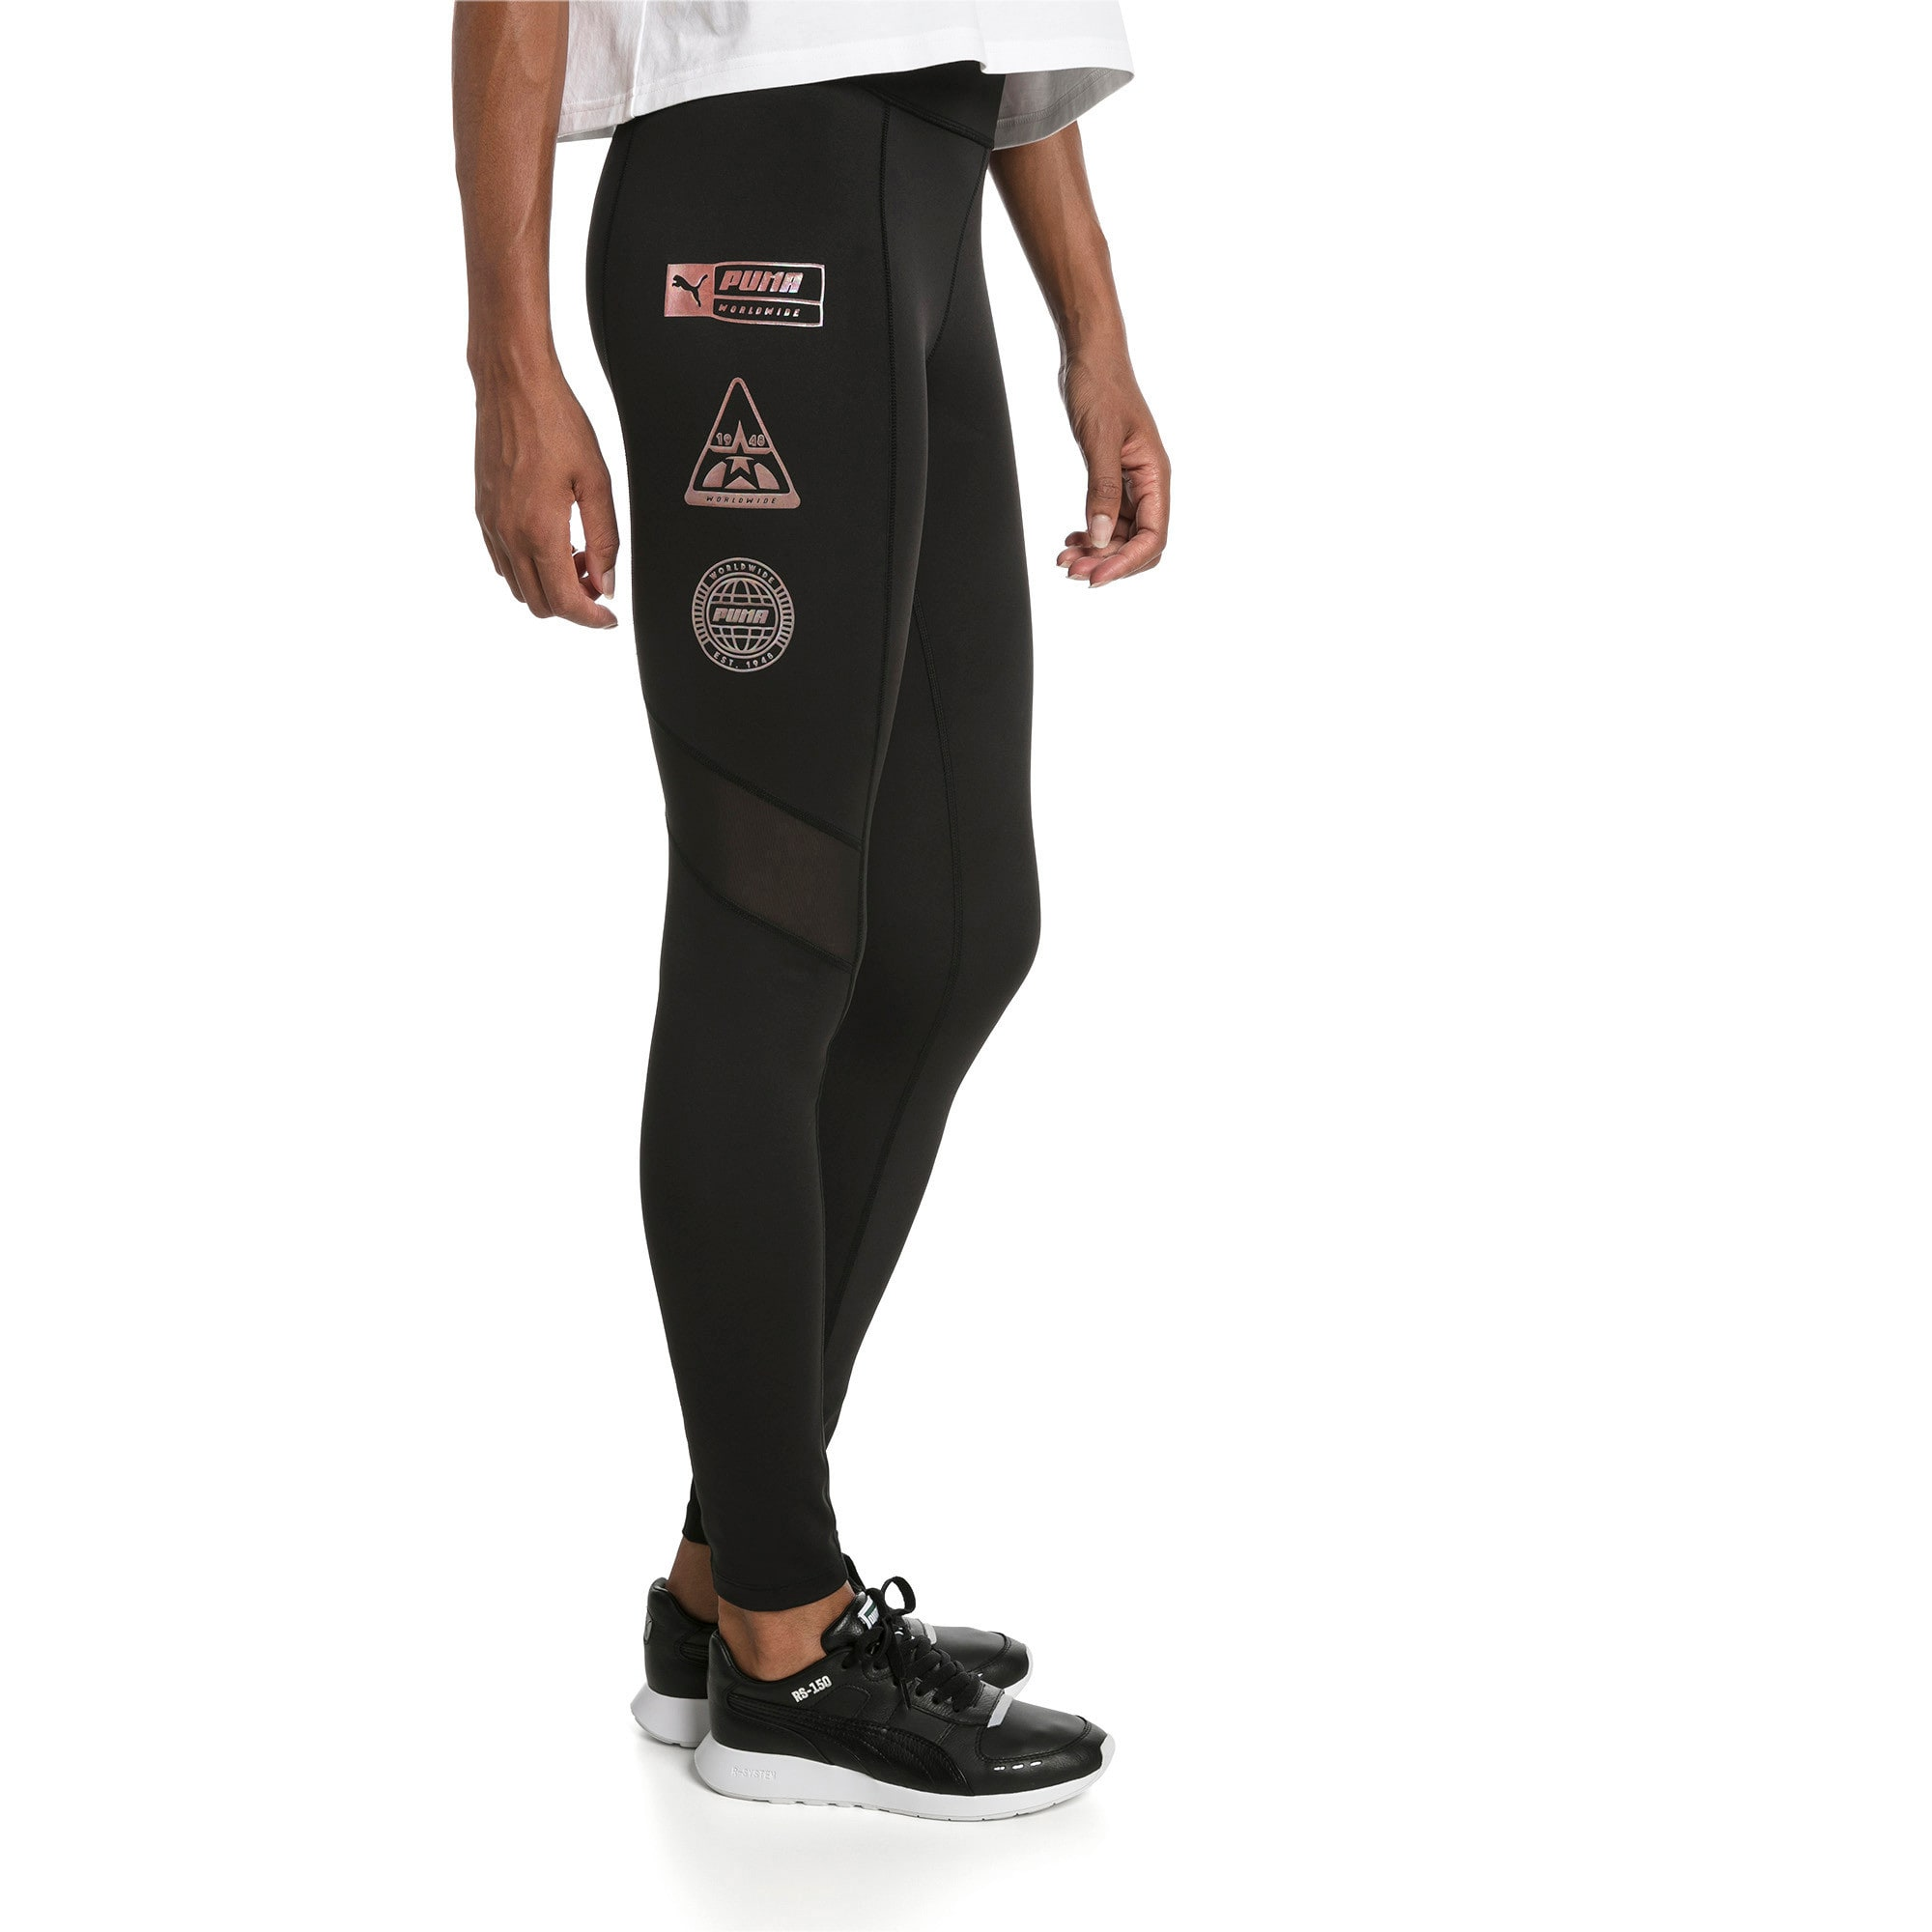 Thumbnail 1 of Trailblazer Women's Leggings, Puma Black, medium